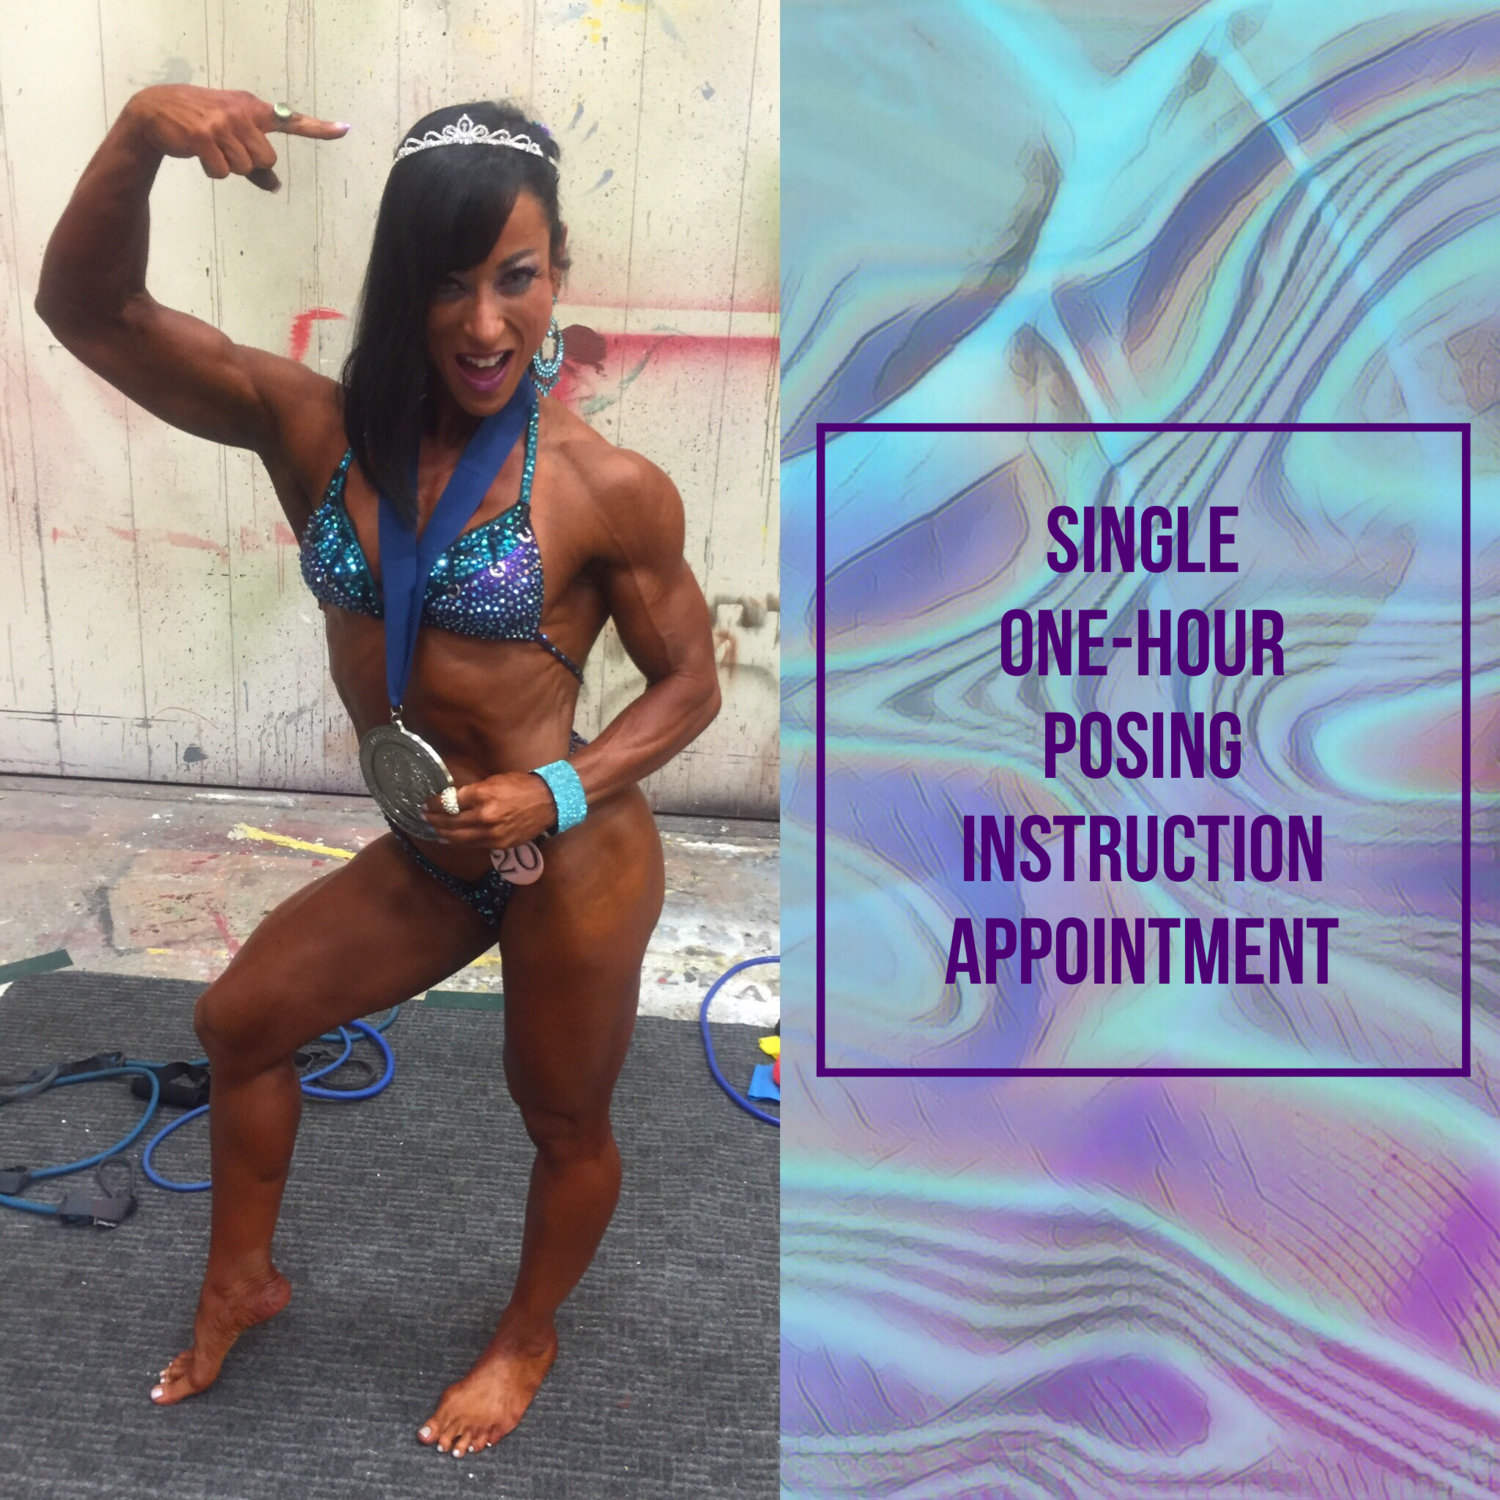 Single 1-Hour Posing Instruction Appointment